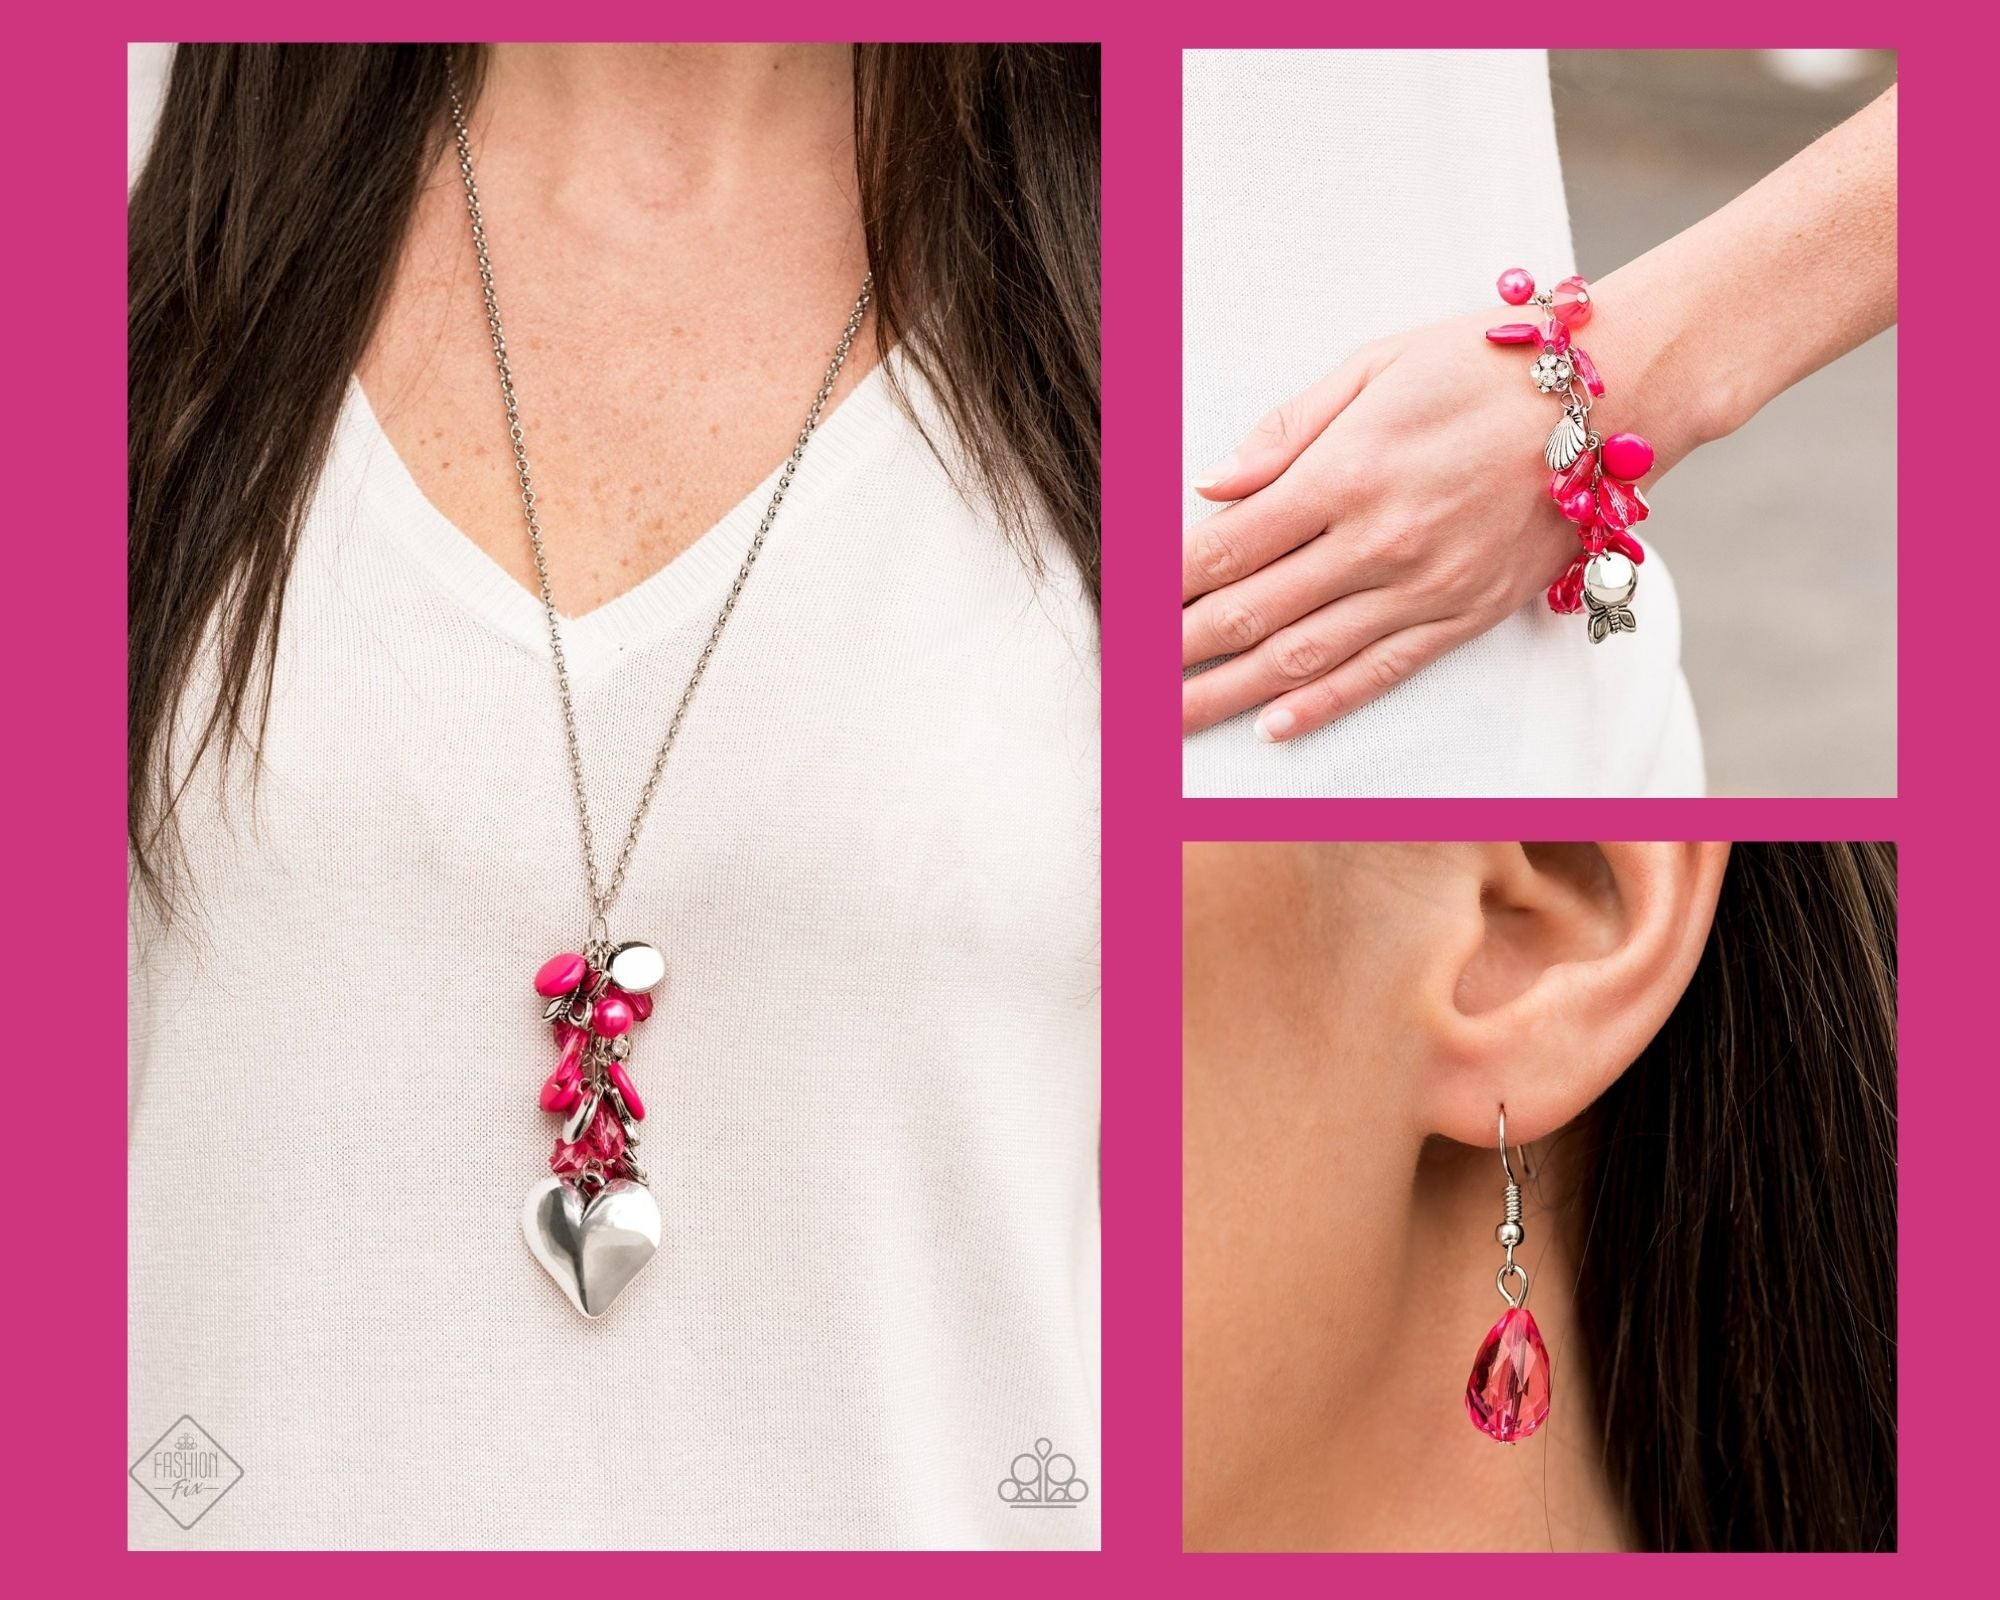 Paparazzi Pink $10 Set - Beach Buzz Necklace and Buzzing Beauty Queen Bracelet